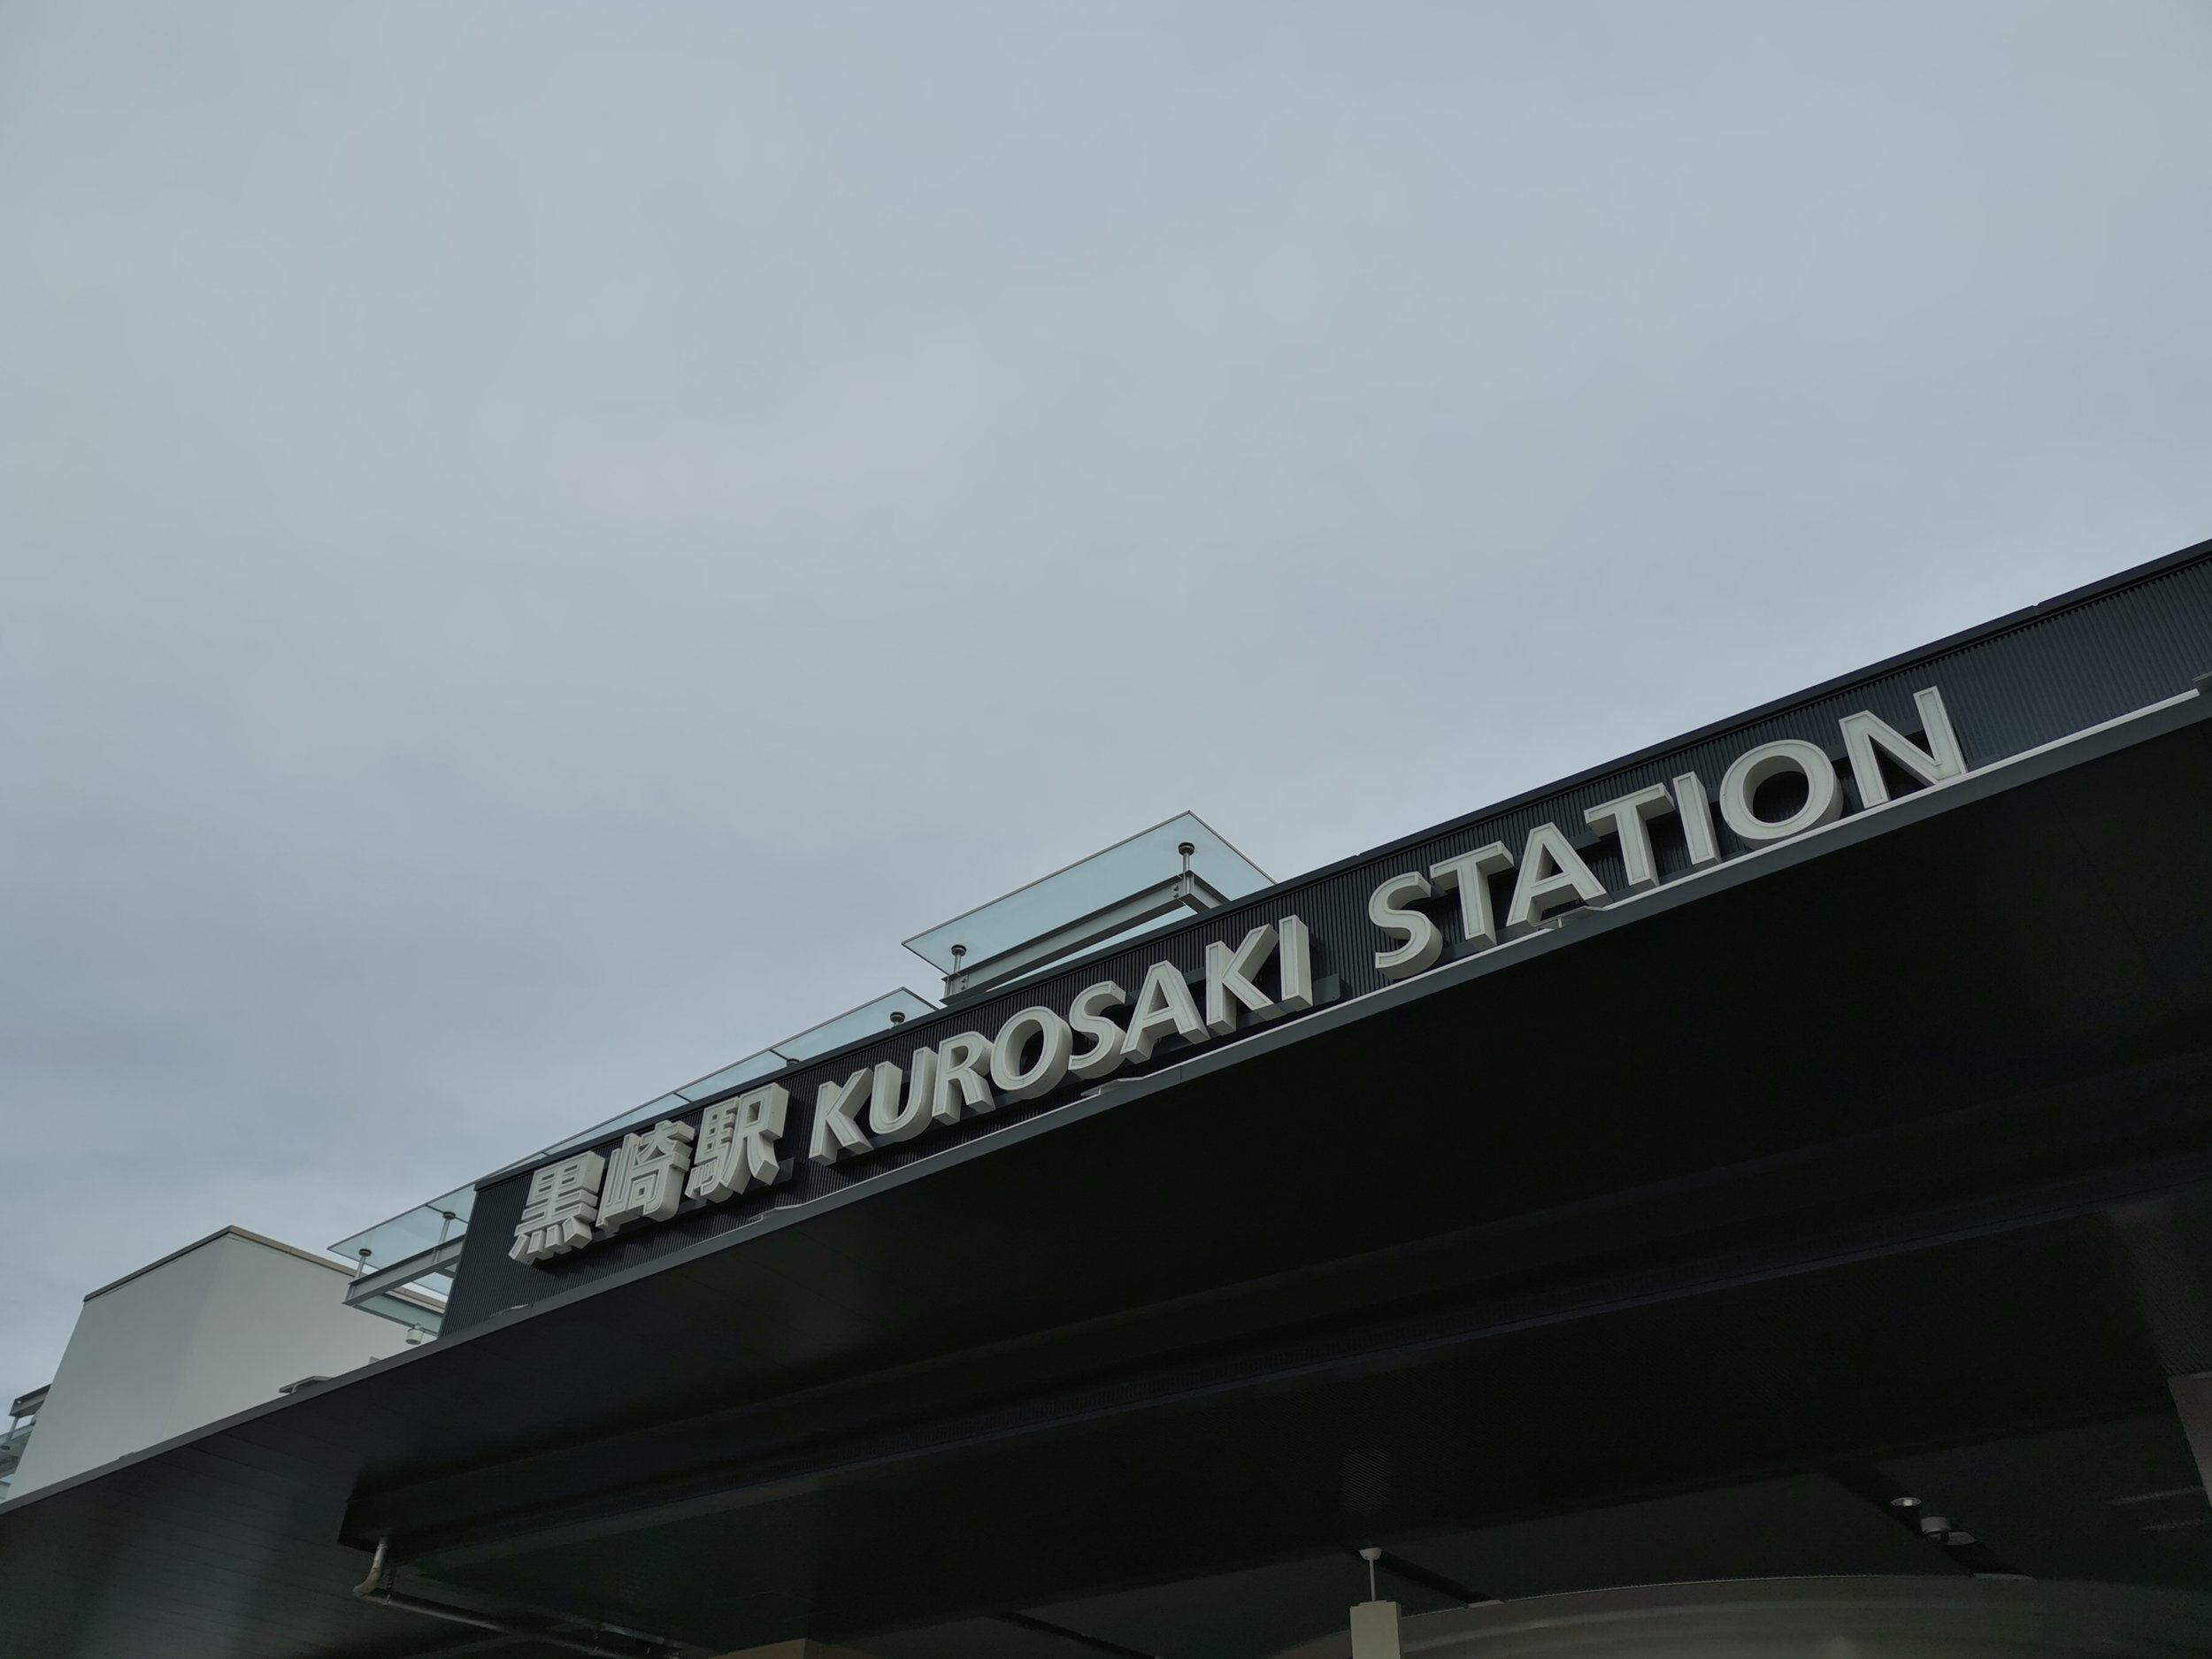 Travelled more than an one hour to Kurosaki in Kitakyushu to pick up our car.